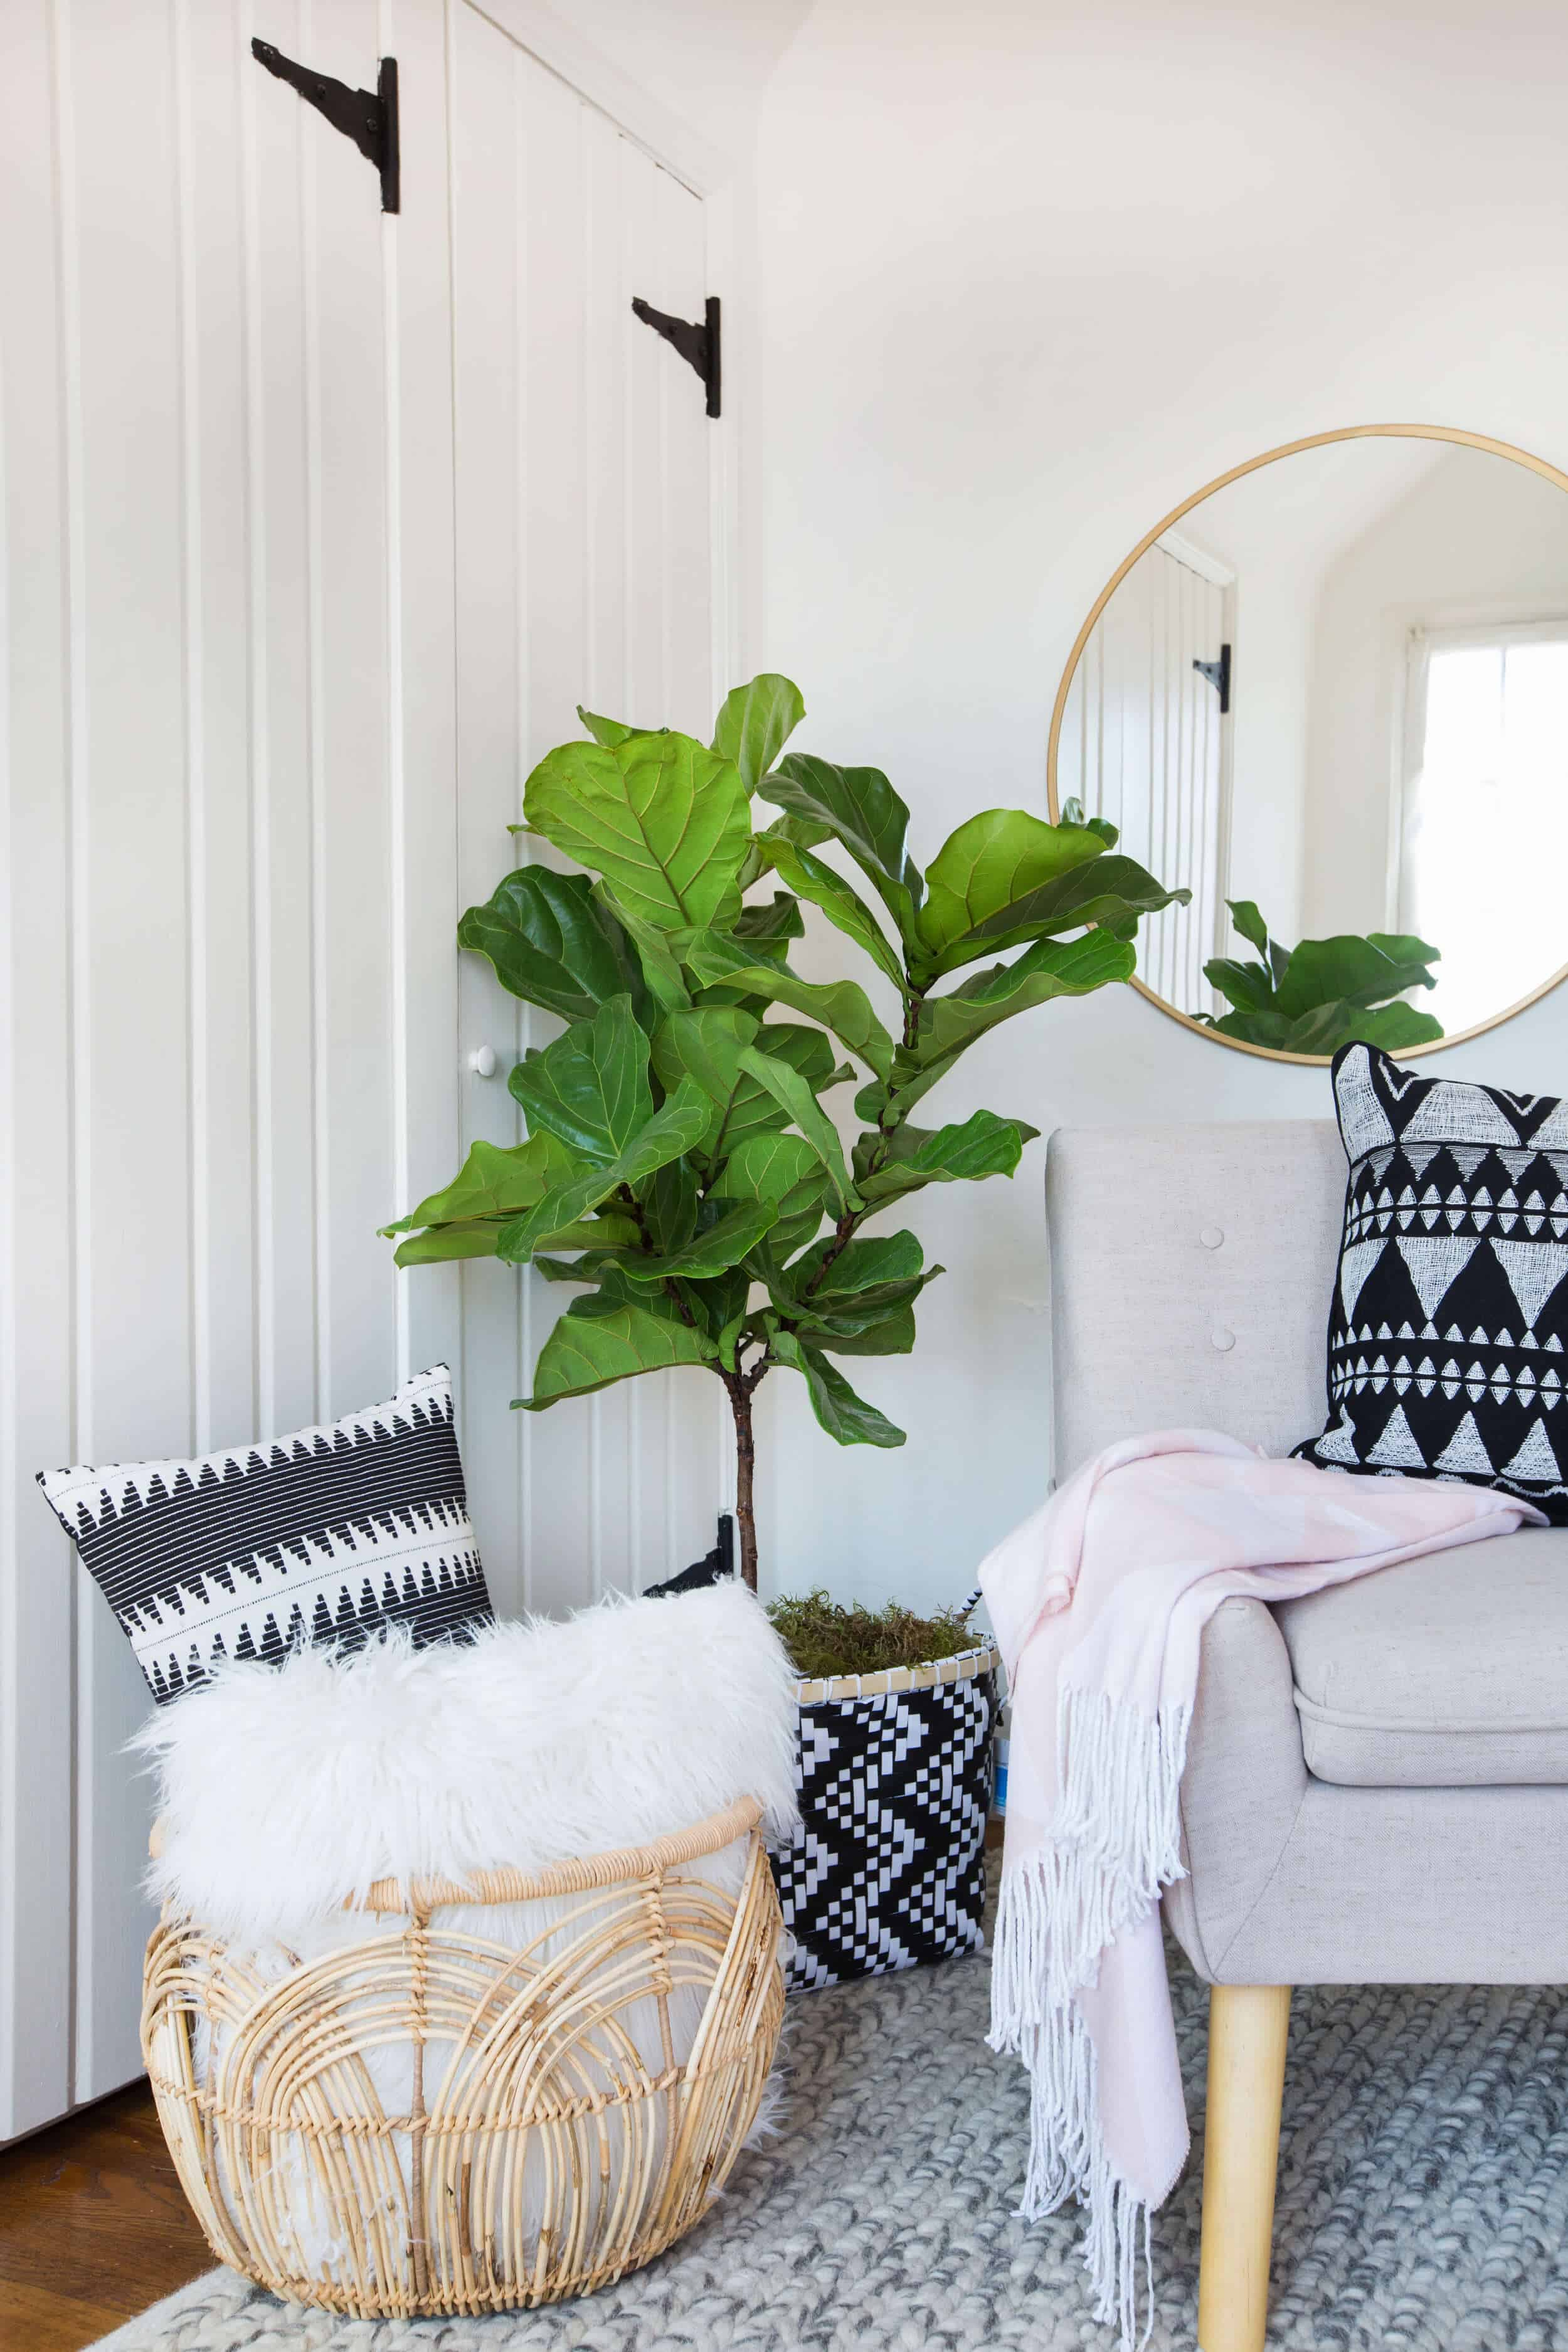 emily-henderson_target_find-your-style_vignette_scandinavian_relaxed_natural_airy_modern_2